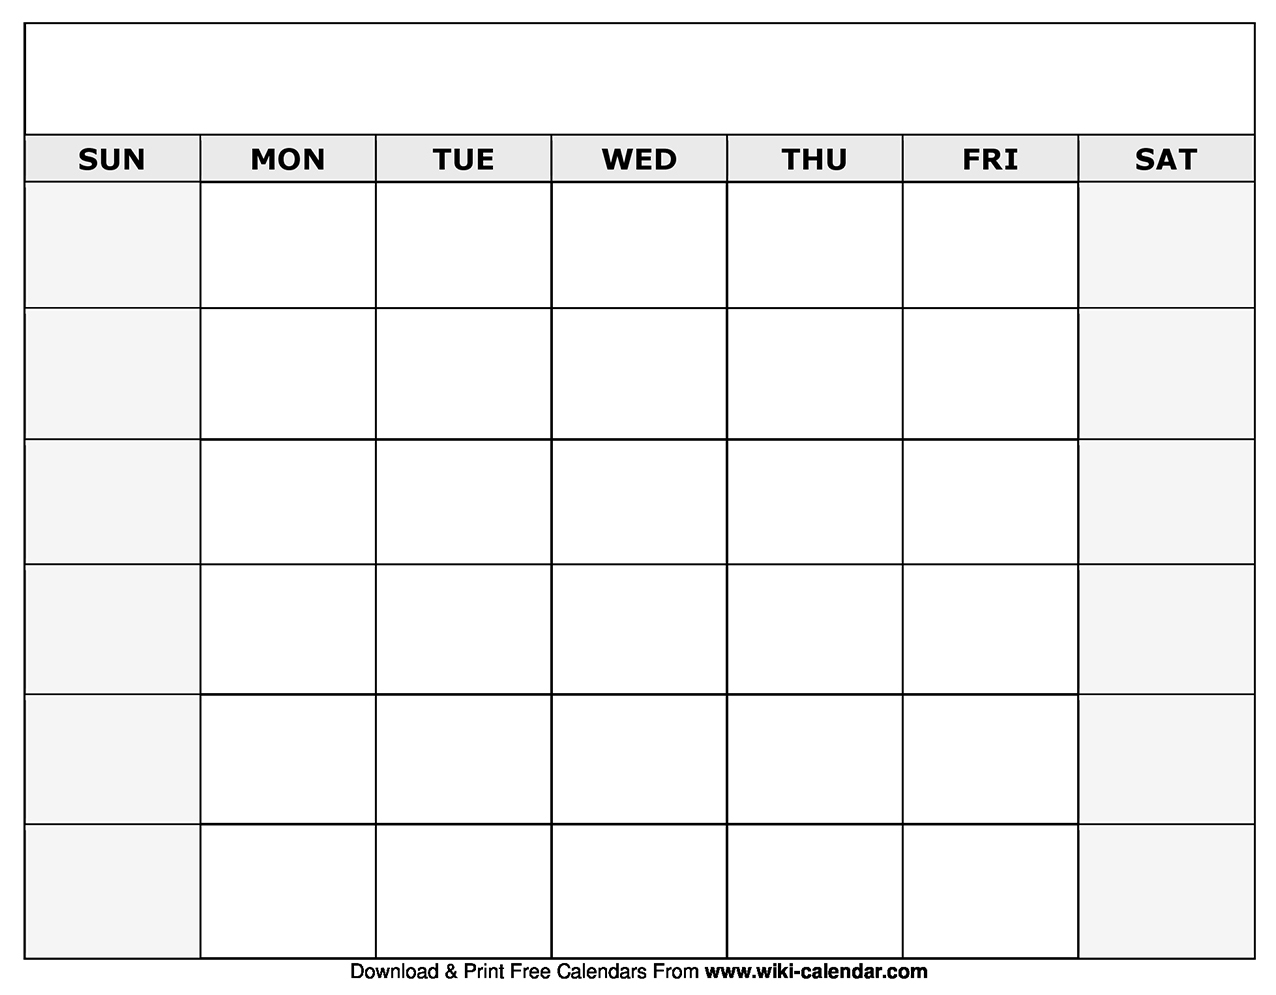 Blank Calendar With Only Weekdays | Template Calendar Printable throughout Blank Calendar With Only Weekdays